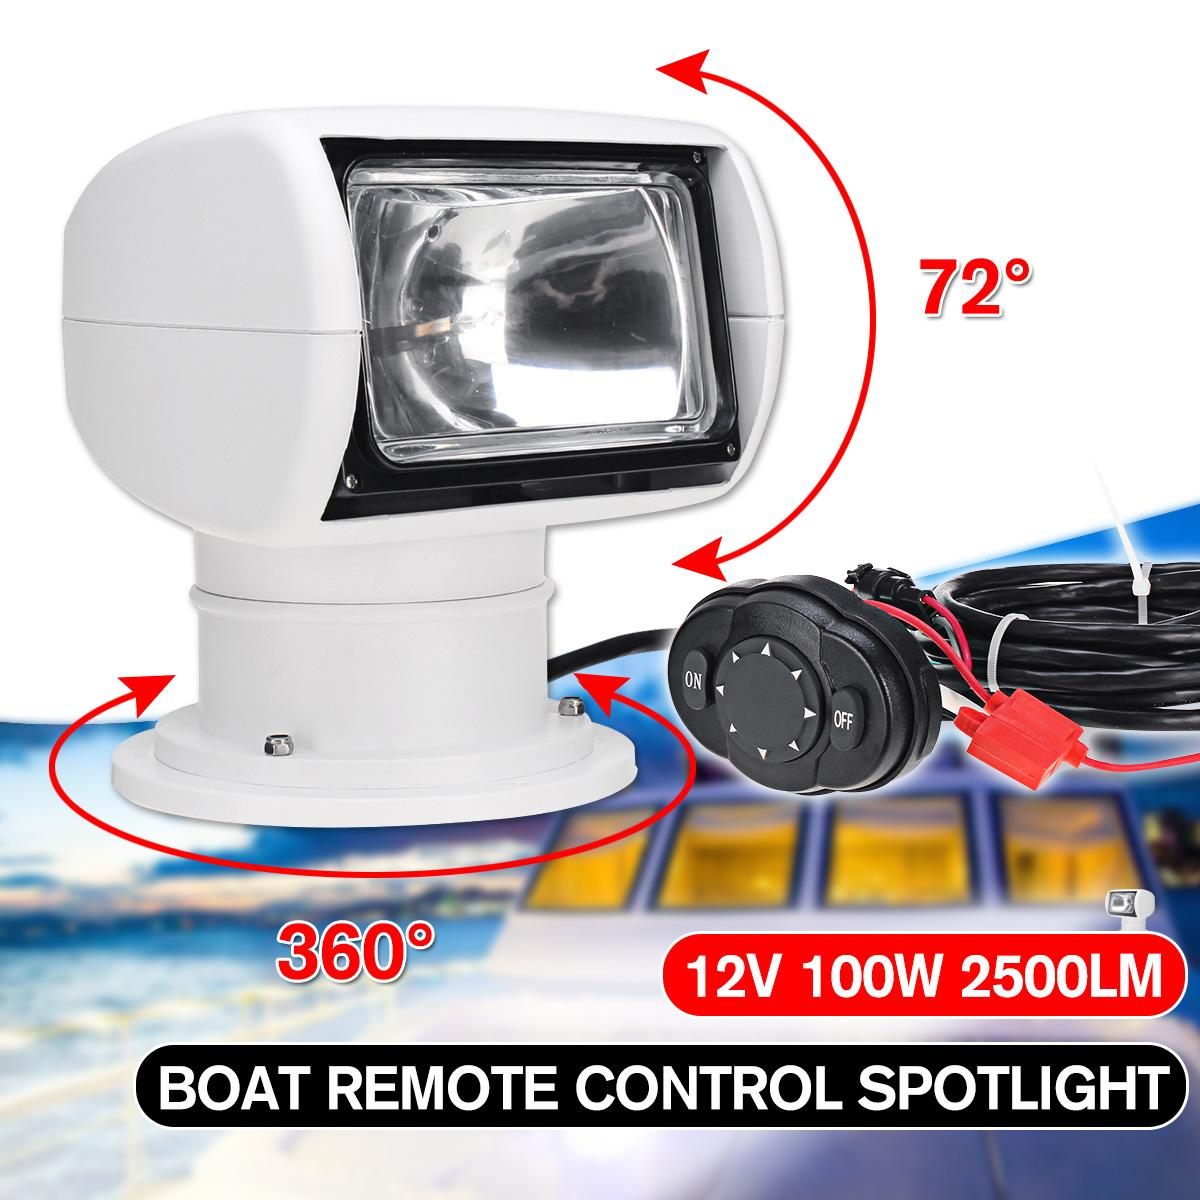 360 Degree 100W Remote Control Search Marine Searchlight Spot Headlight Searching Light For Yacht TRUCK Fishing Boats